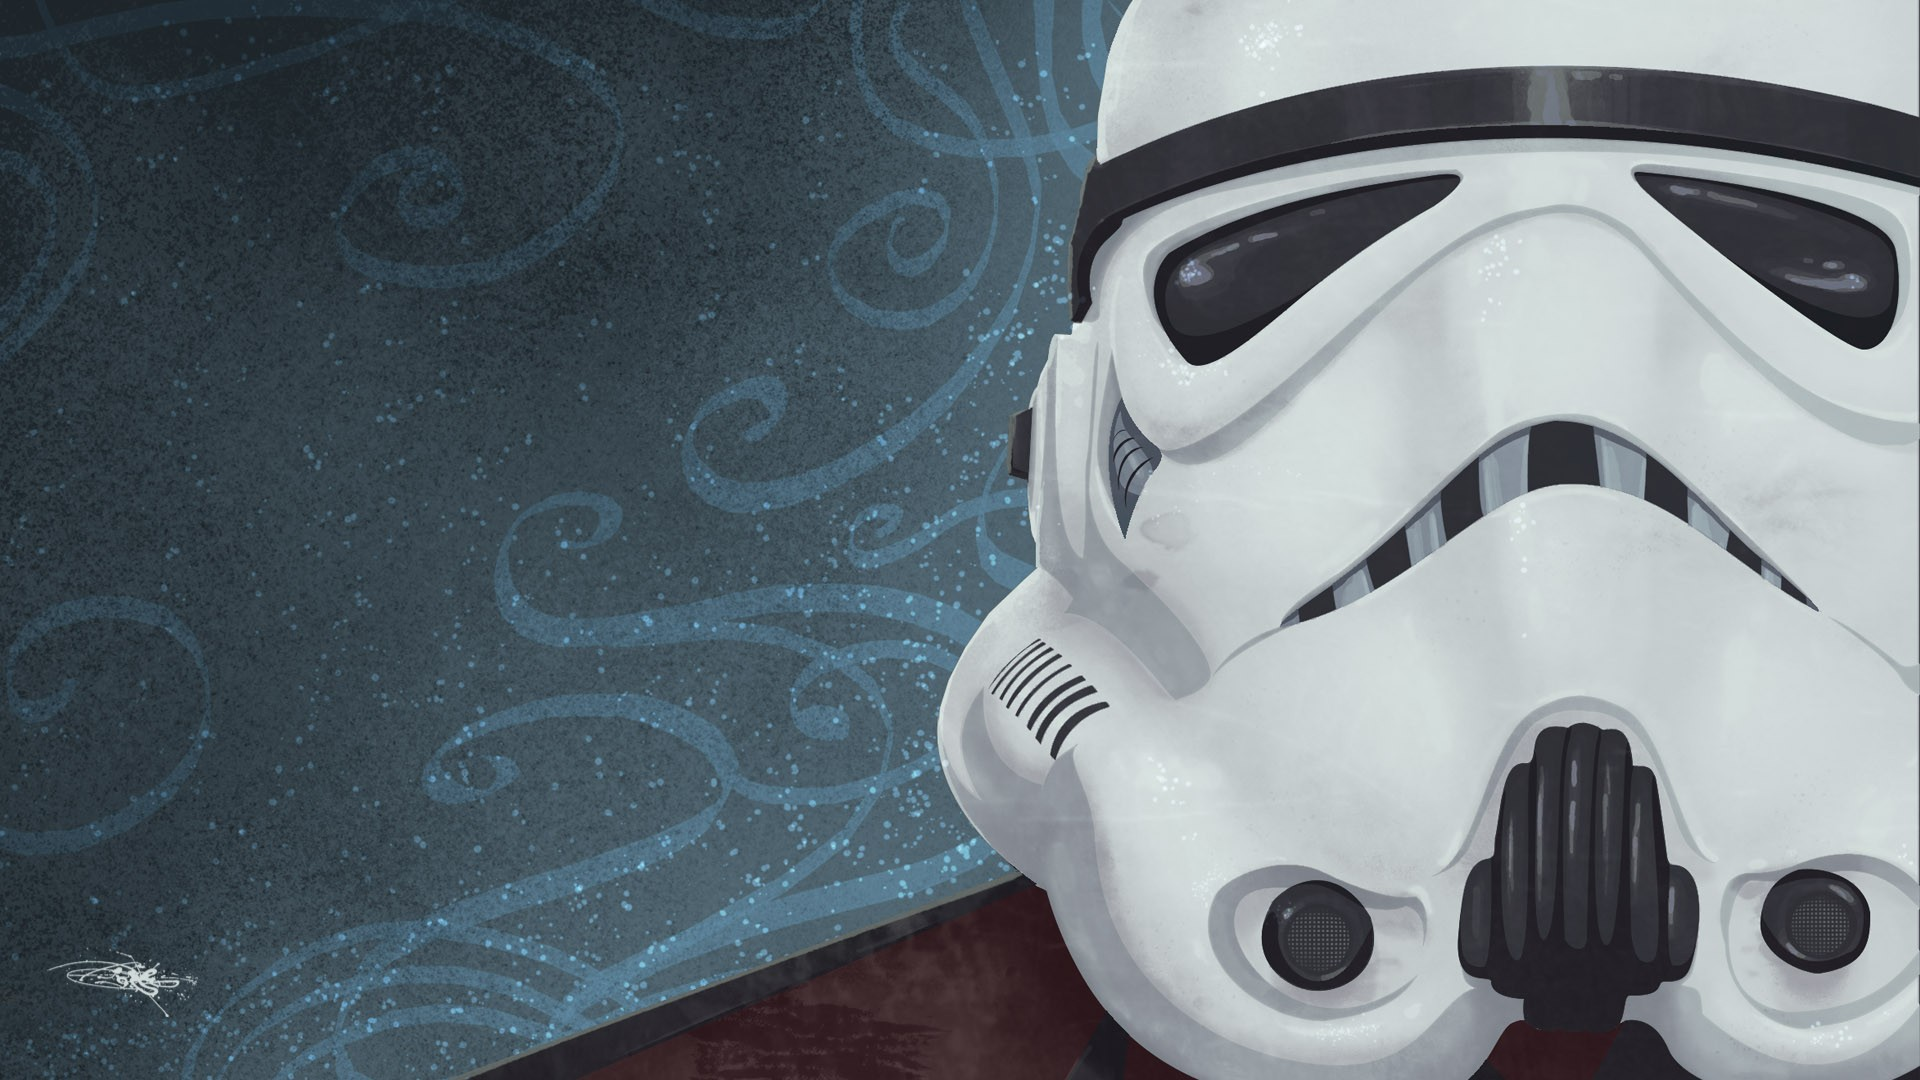 Stormtrooper Wallpapers And Backgrounds